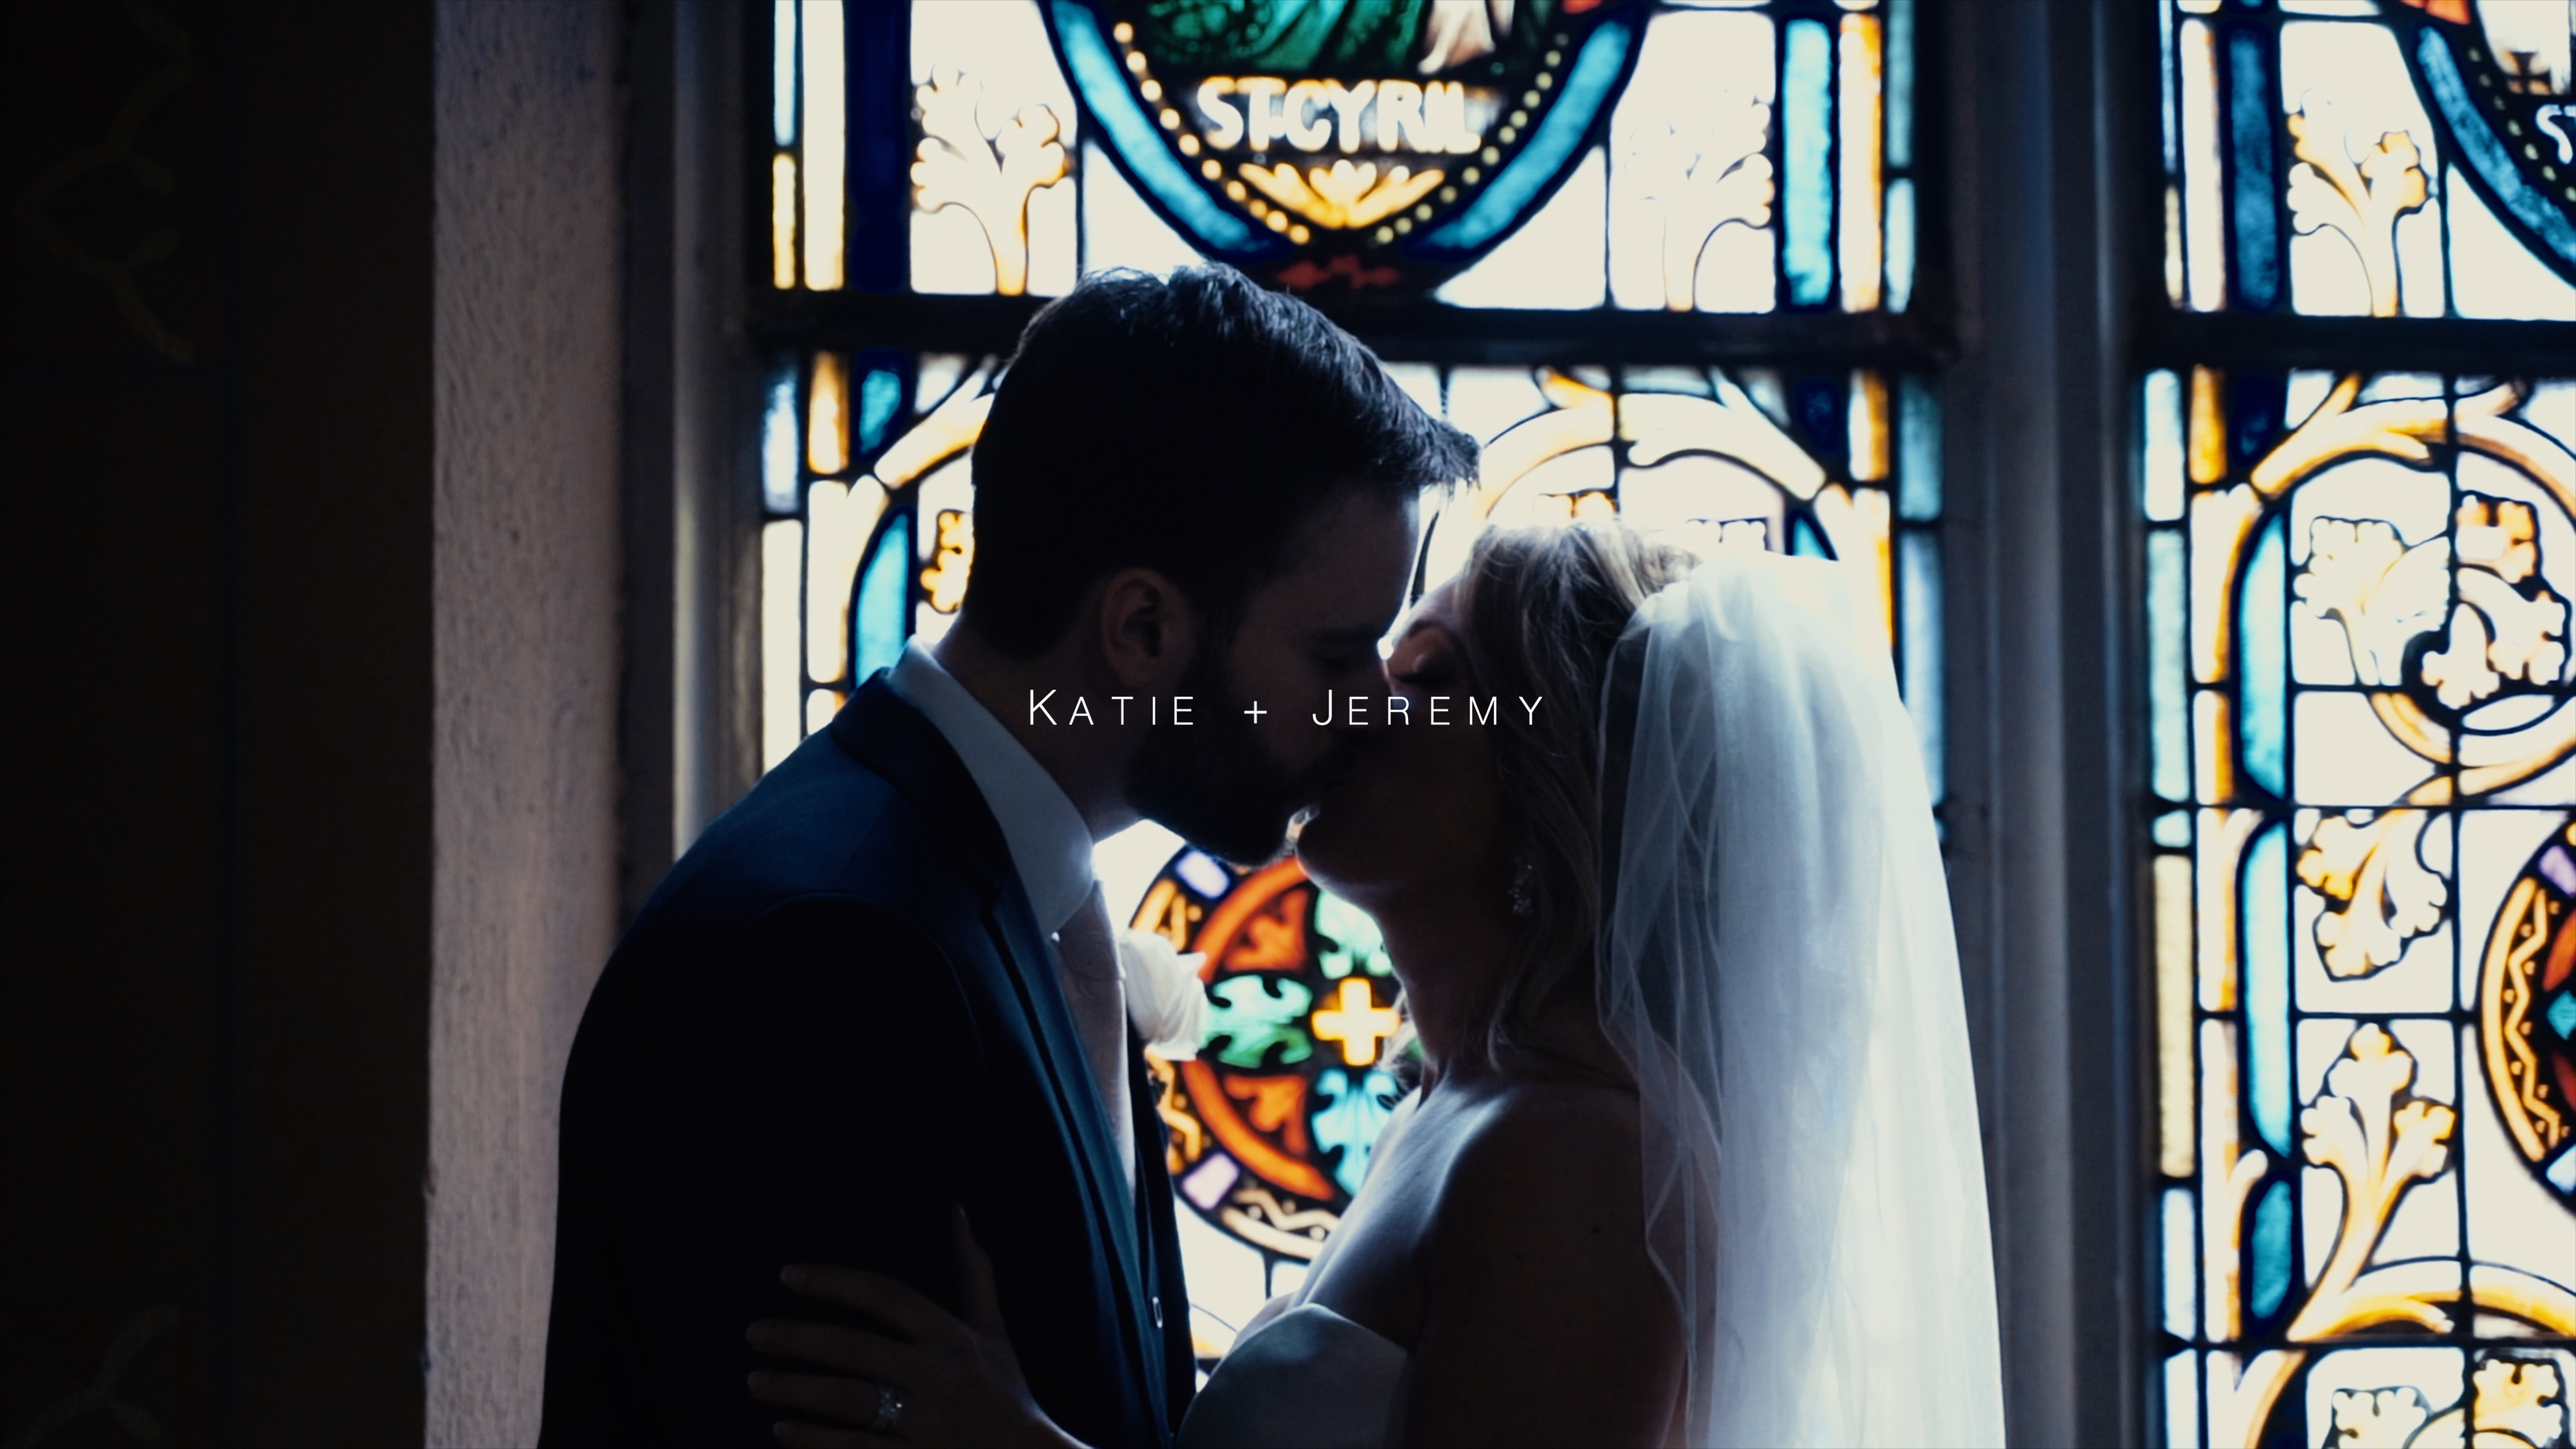 Katie + Jeremy | St. Louis, Missouri | Windows on Washington